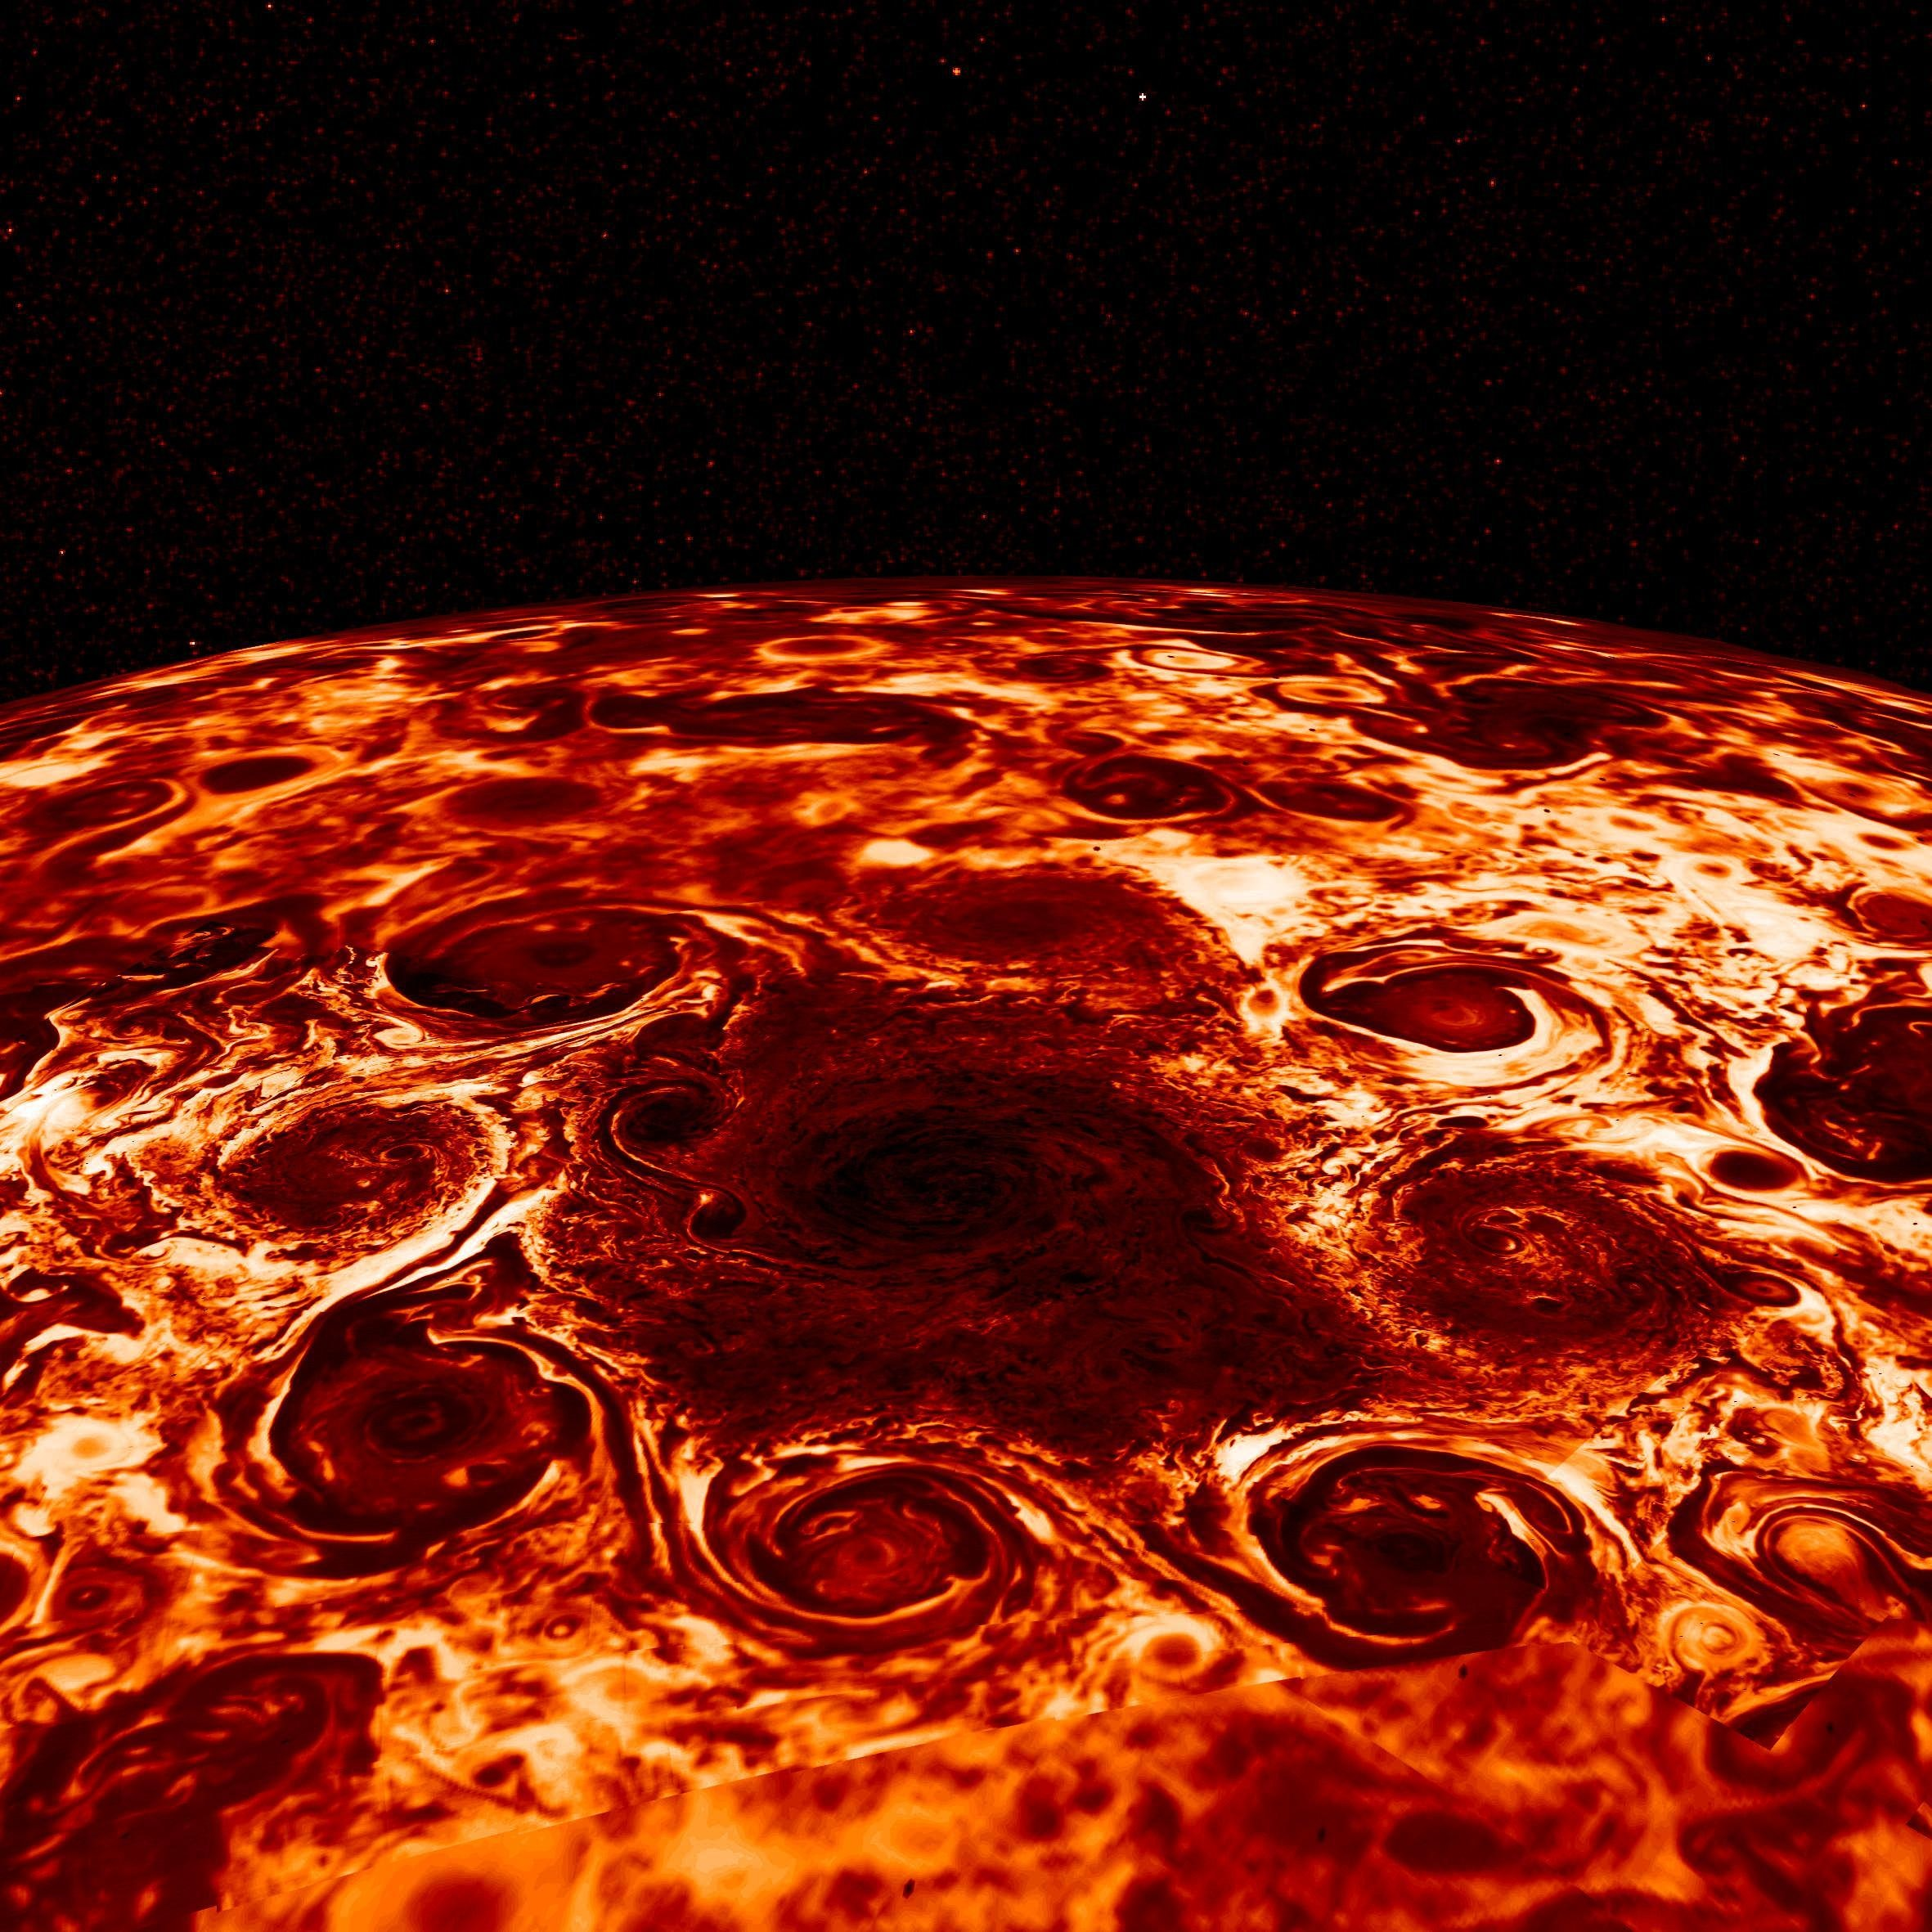 Jupiter's northern cyclones in infrared, which captures the radiating heat. In this original image, darker regions are colder and cloudier, while brighter regions are relatively cloud-free, allowing us to look deeper. NASA/JPL-Caltech/SwRI/ASI/INAF/JIRAM